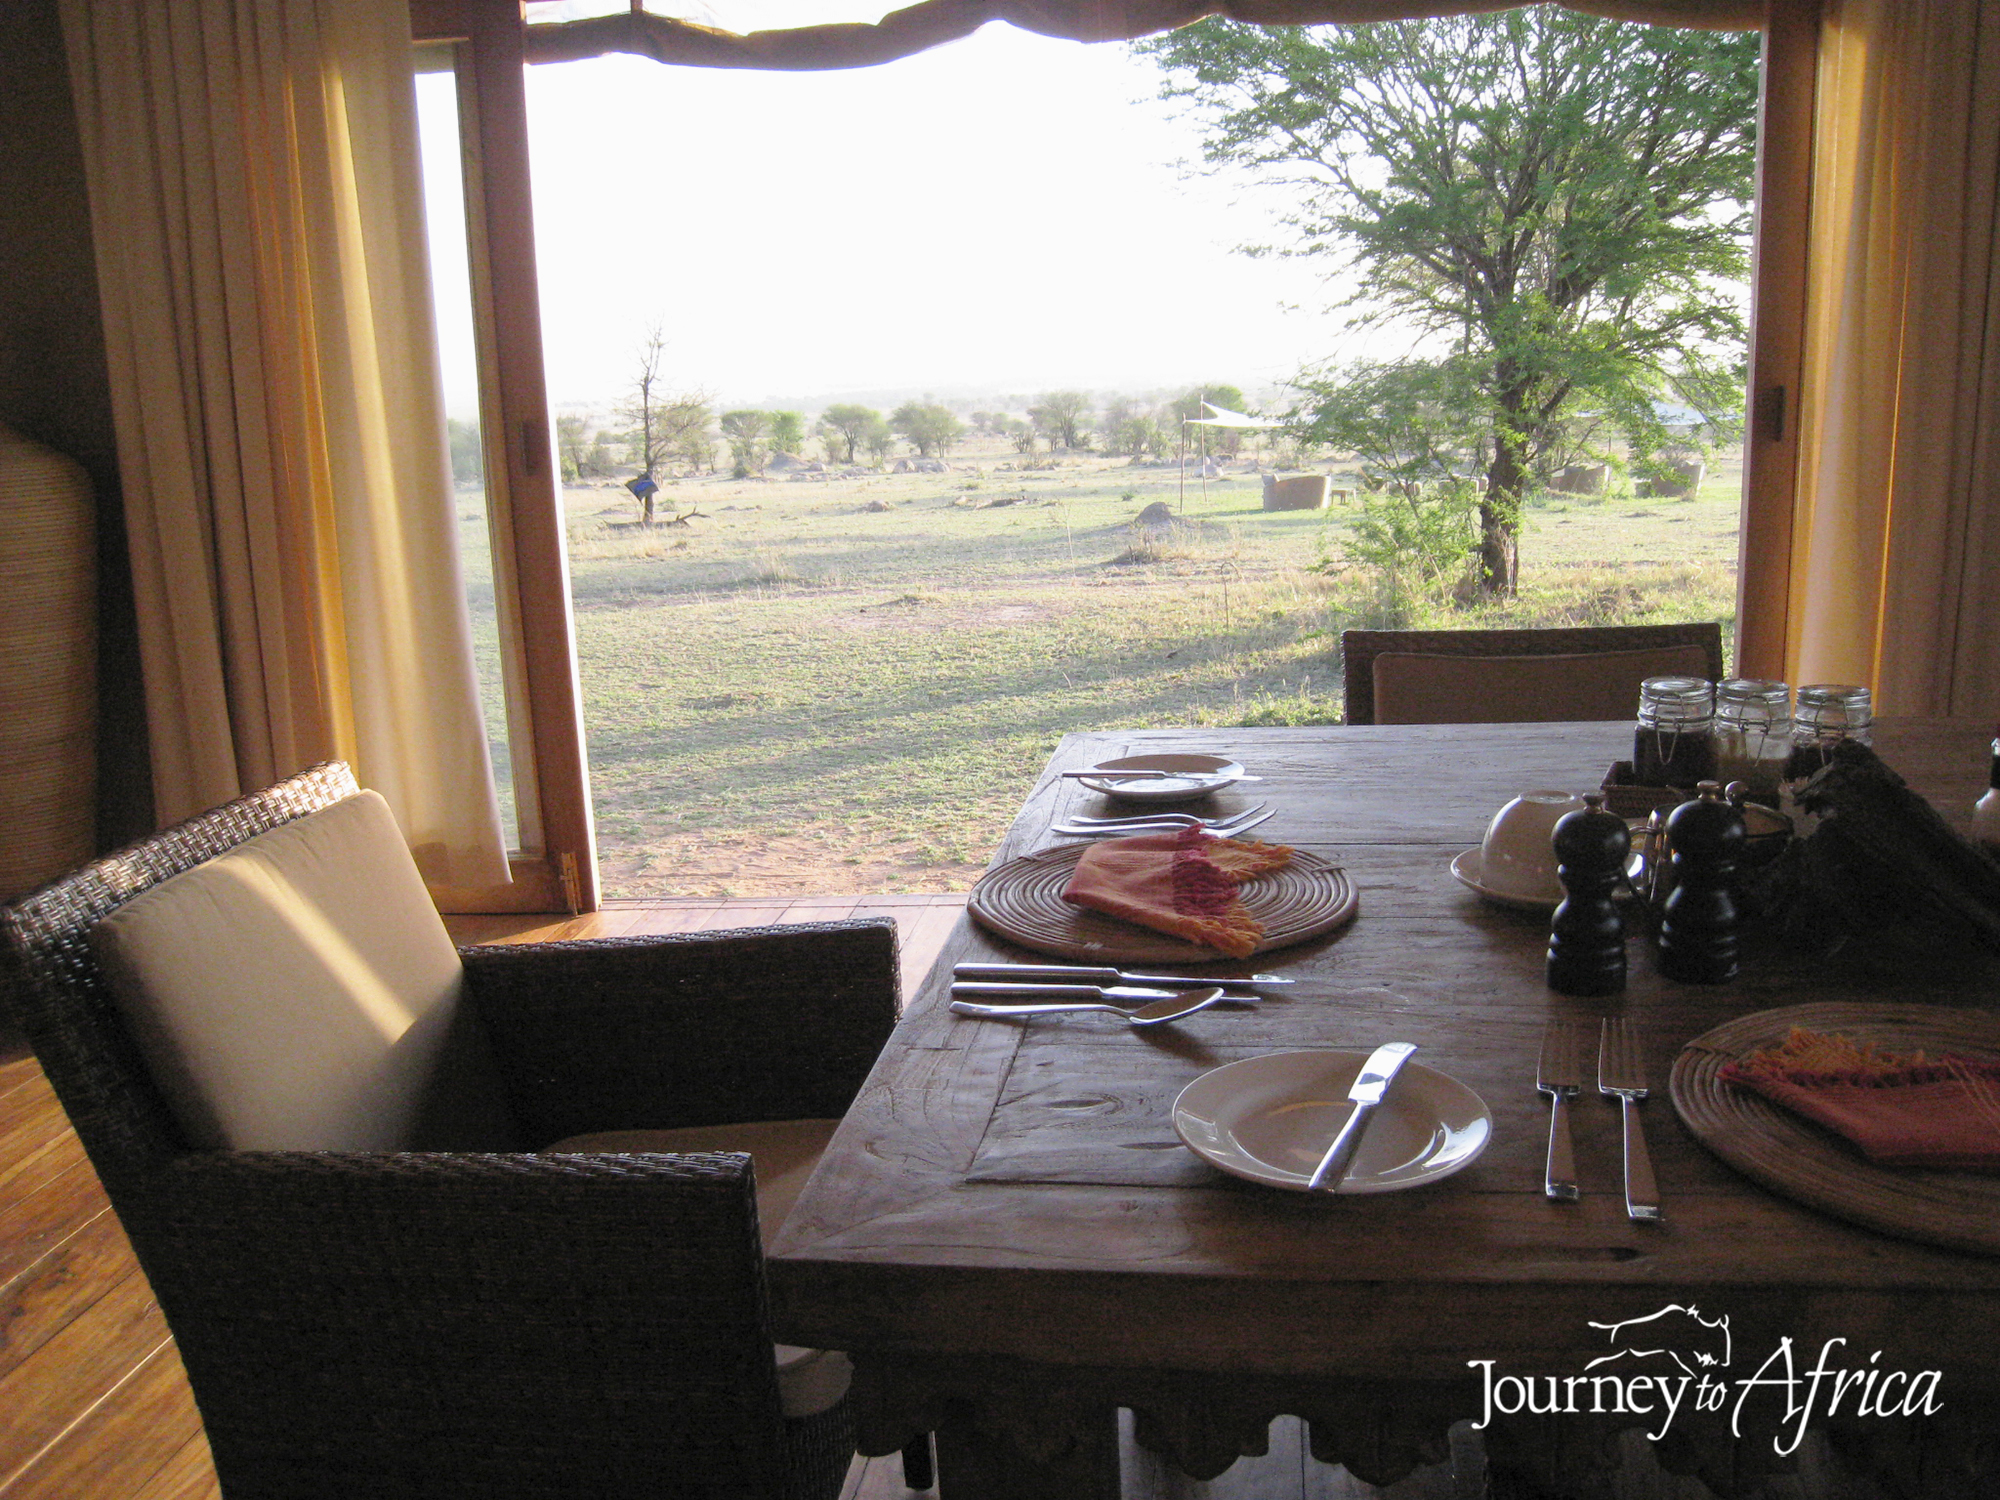 Breakfast on Safari